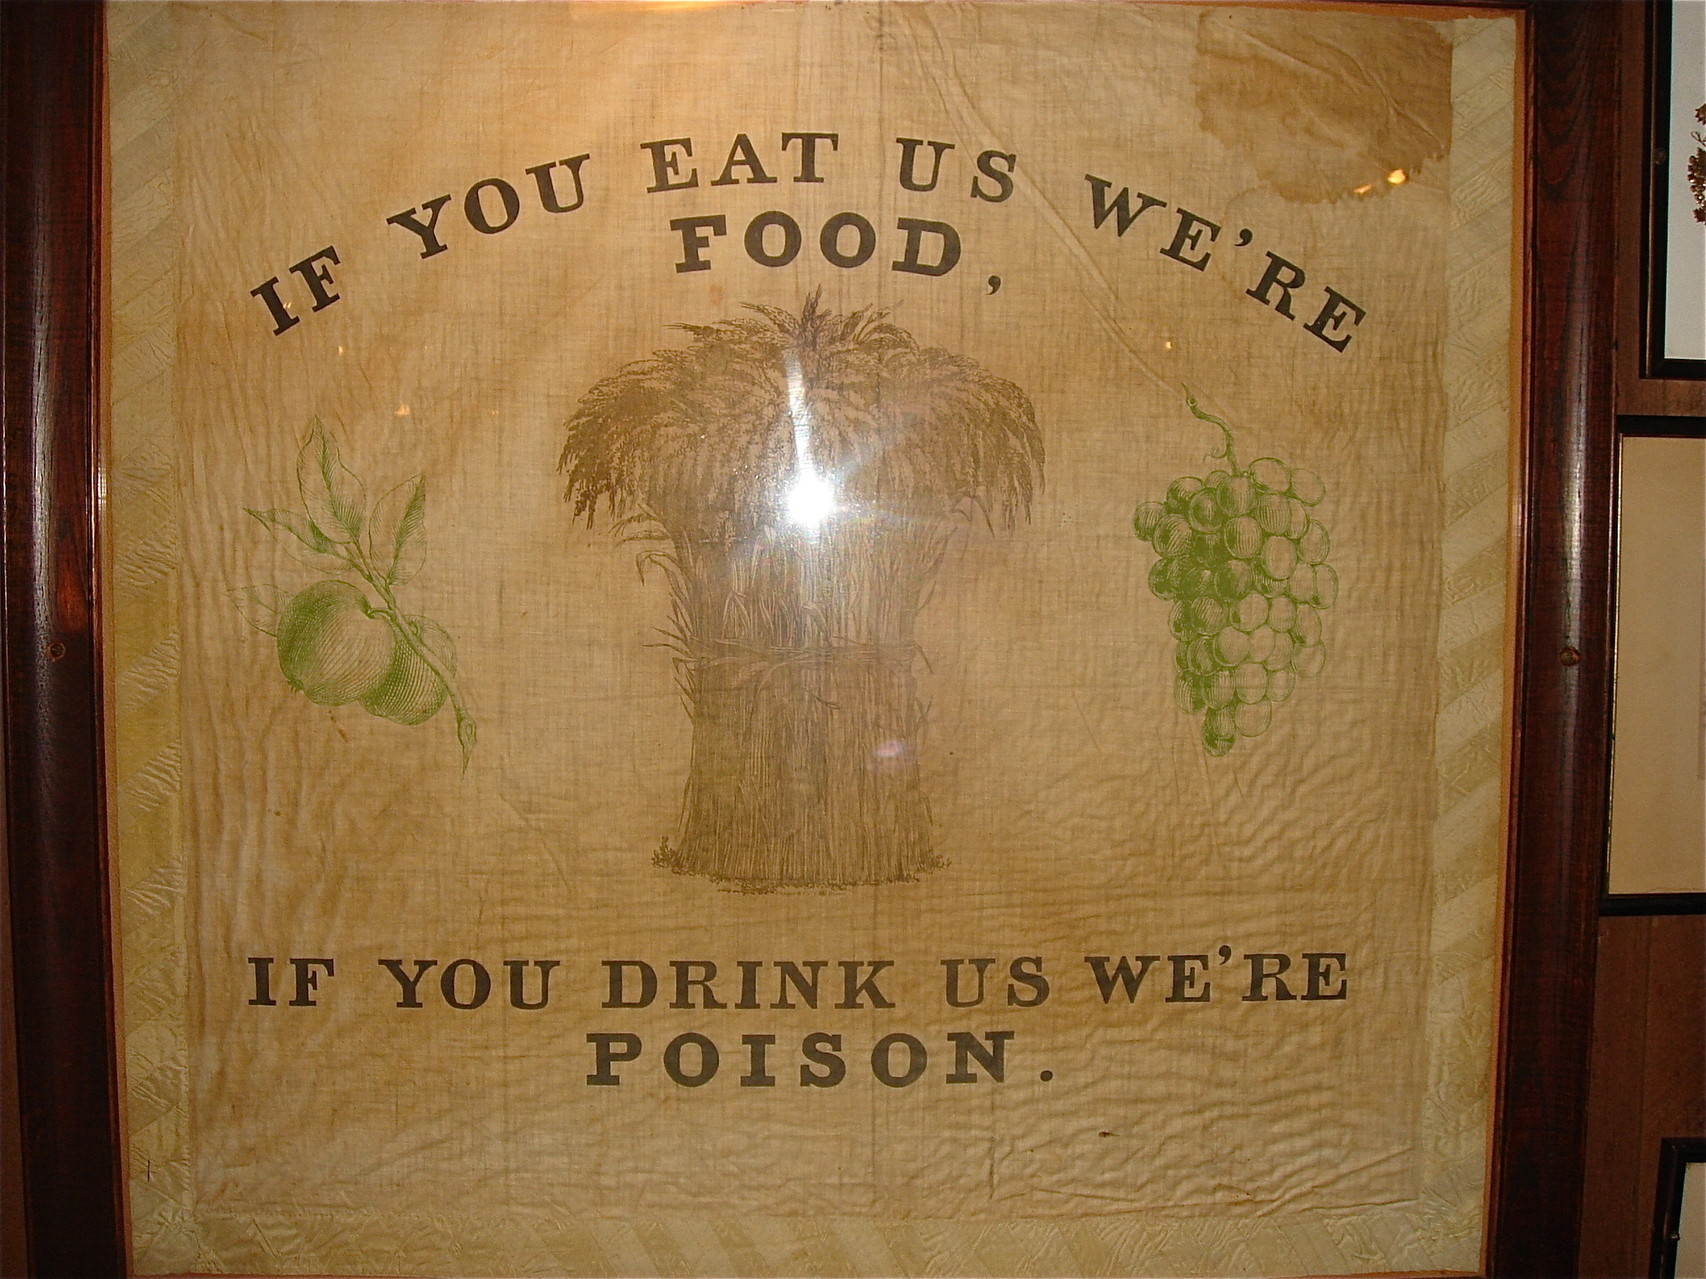 Old Saying from the Griswold Inn!